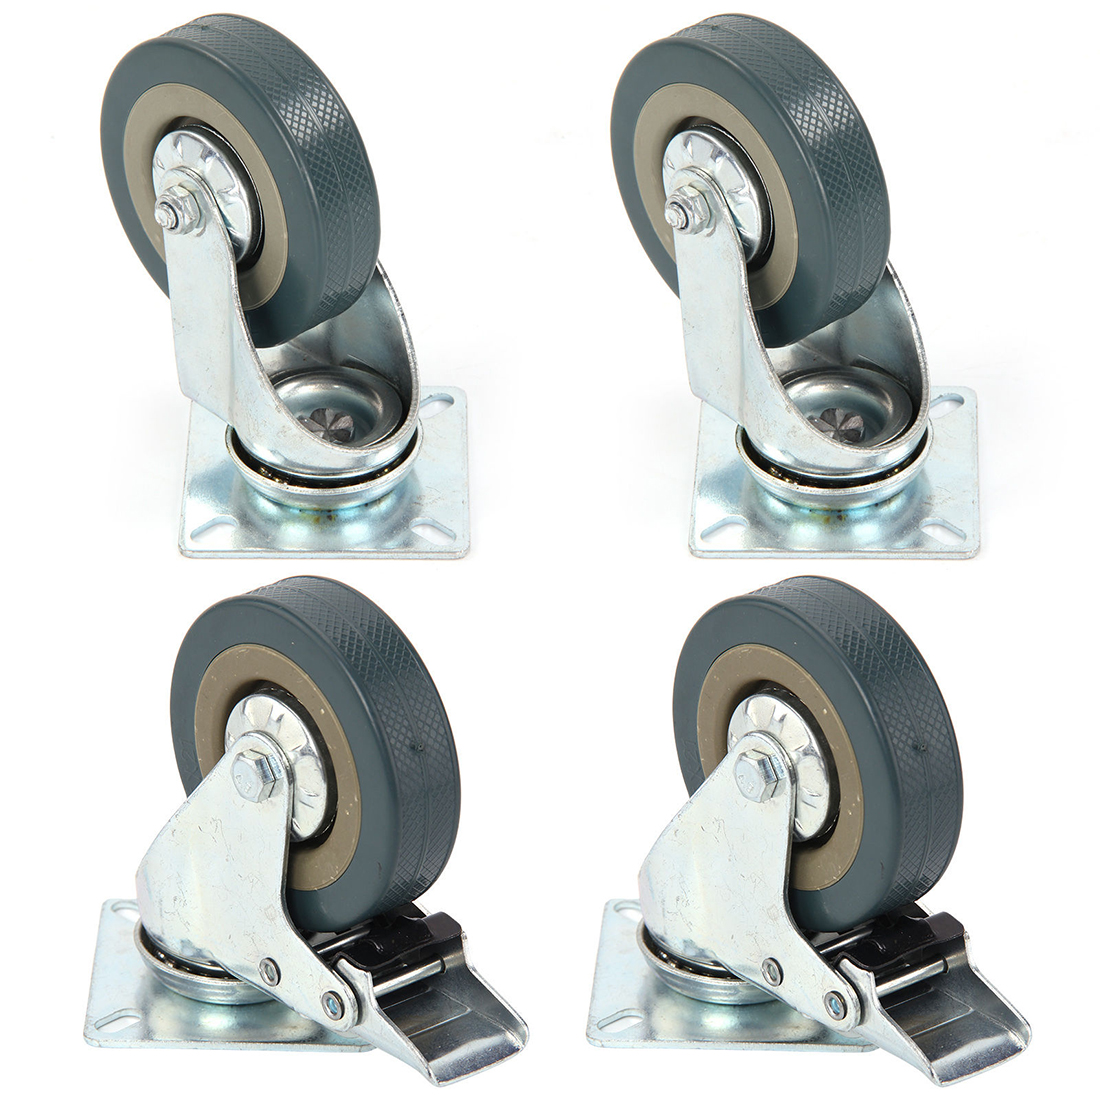 Set of Heavy Duty 50x17mm  Rubber Swivel Castor Wheels Trolley Caster Brake 25KGModel:2 with brake +2without brake ys 138no nc ansi standard heavy duty electric strike size 124 x 32 x 33 mm